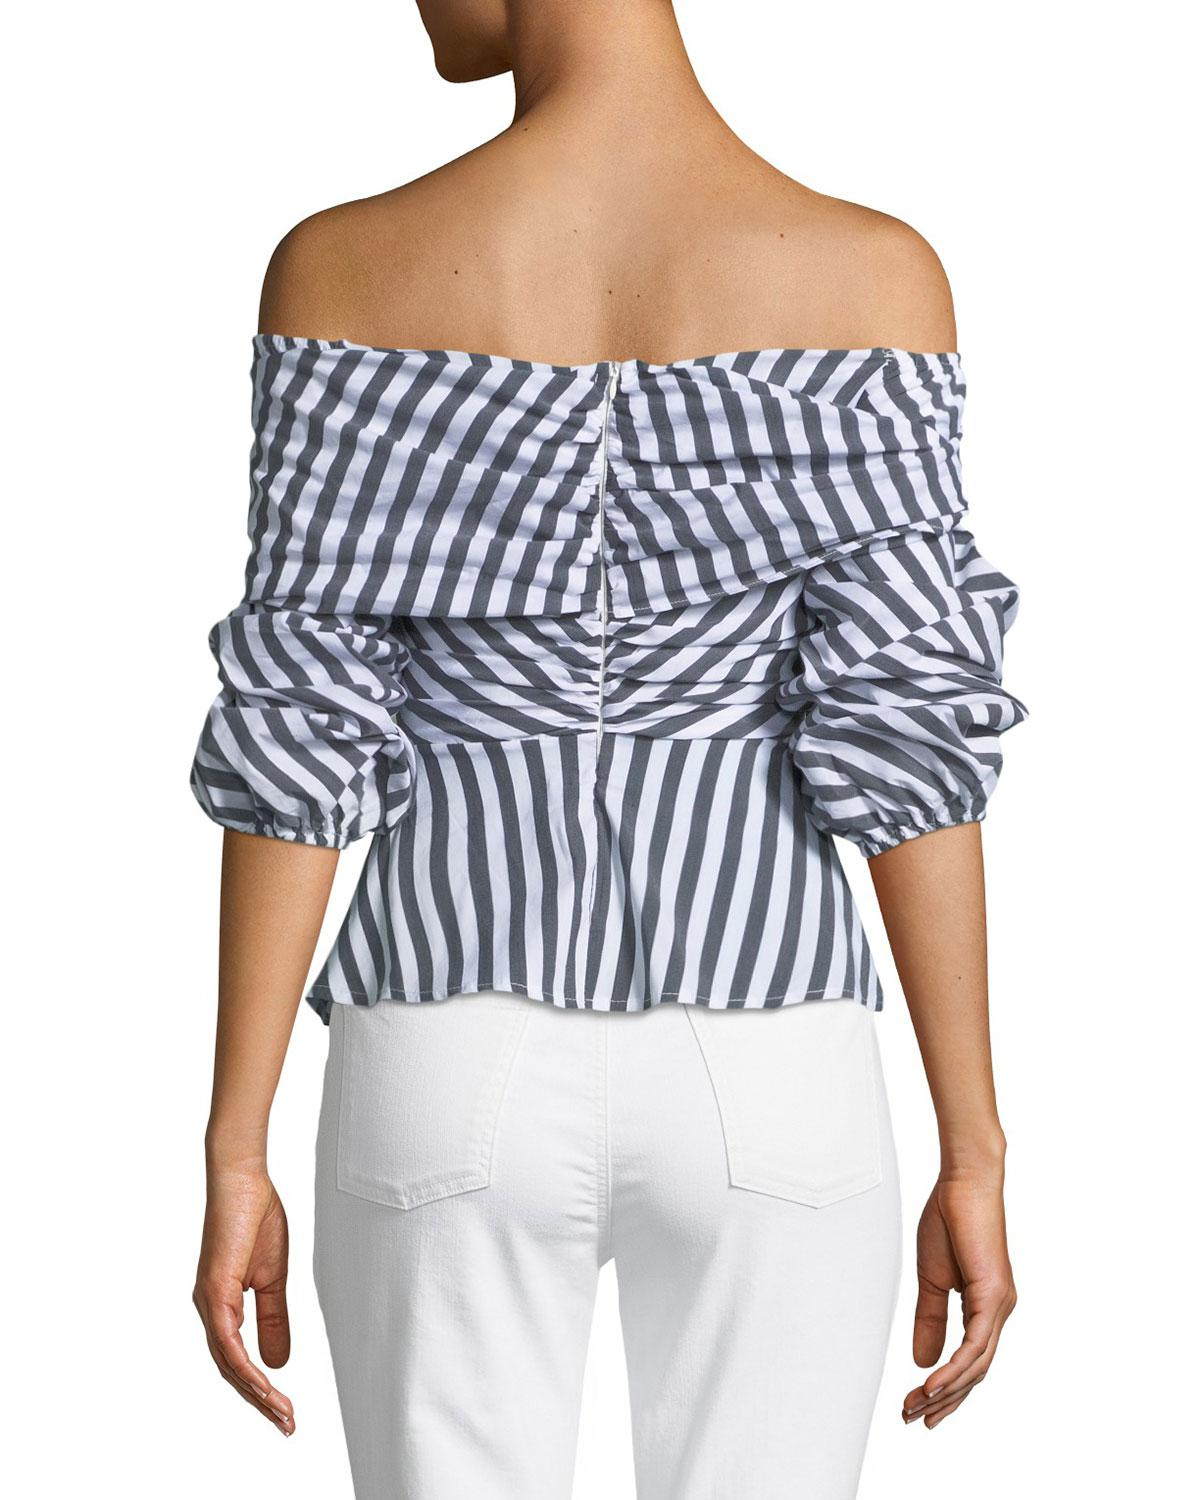 562a2b9d0c5 Haute Rogue Striped Off-the-shoulder Tie-front Top in Black - Lyst